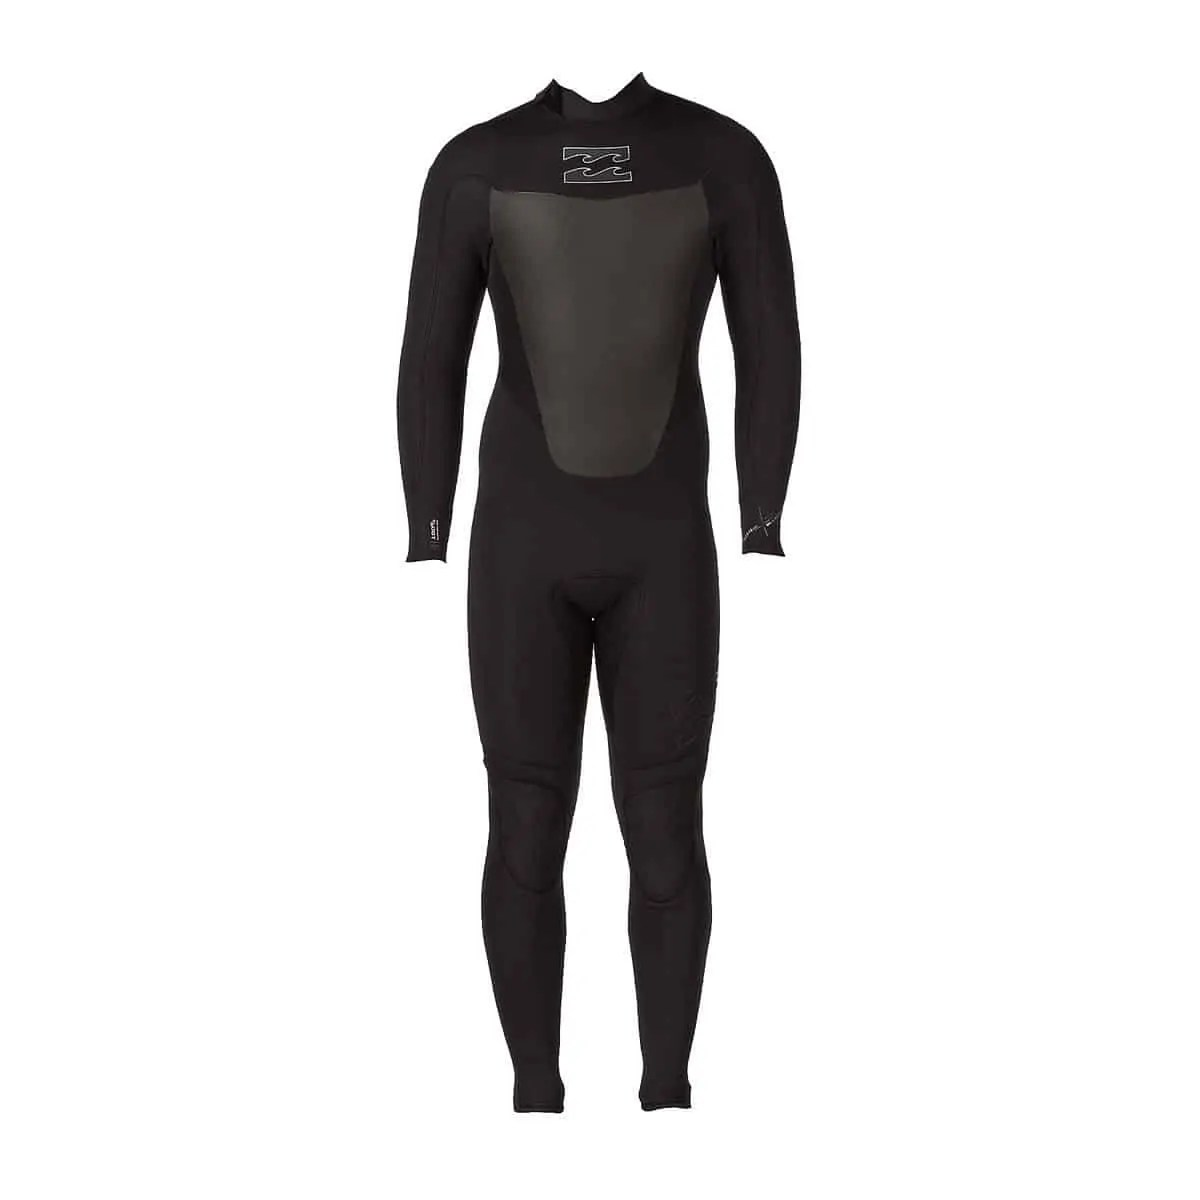 55% de descuento. Oferta en Surf. Billabong Trajes de neopreno – Billabong Foil 5/4mm Back Zip Neopreno – Black/Black/Black